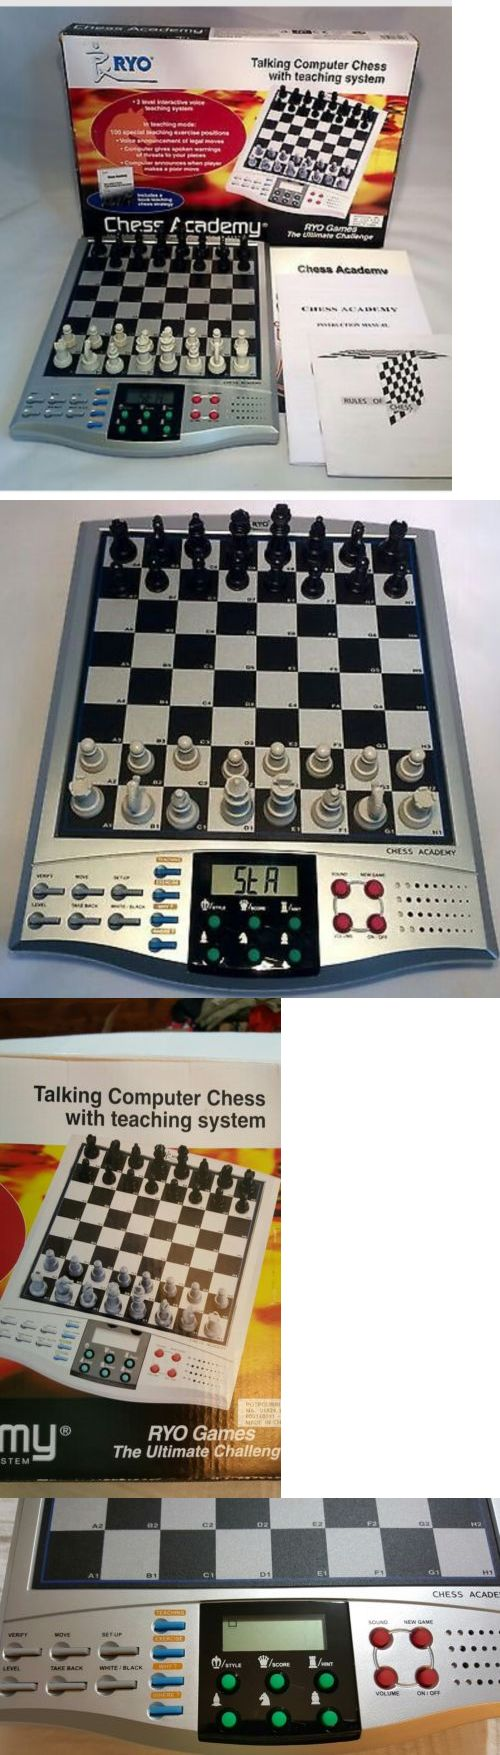 Electronic Chess 155339: Ryo Chess Academy Electronic Talking Computer Chess Teaching System W Manual -> BUY IT NOW ONLY: $39.95 on eBay!